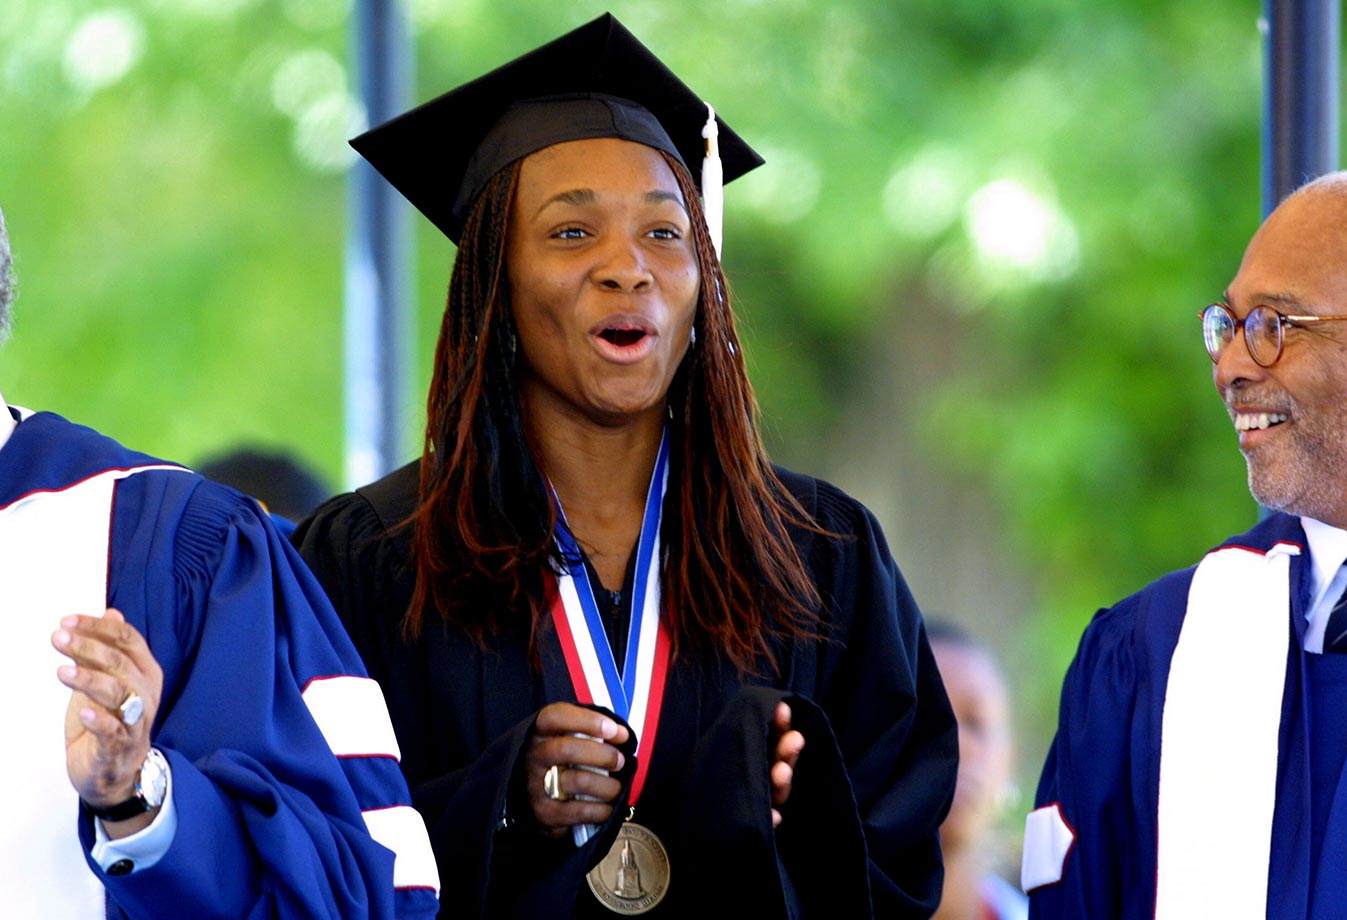 Venus Williams received an Honorary Degree of Citation of Achievements from Howard University. She was so moved by the gesture that she reportedly began to cry during her speech in front of the 2002 graduating class.